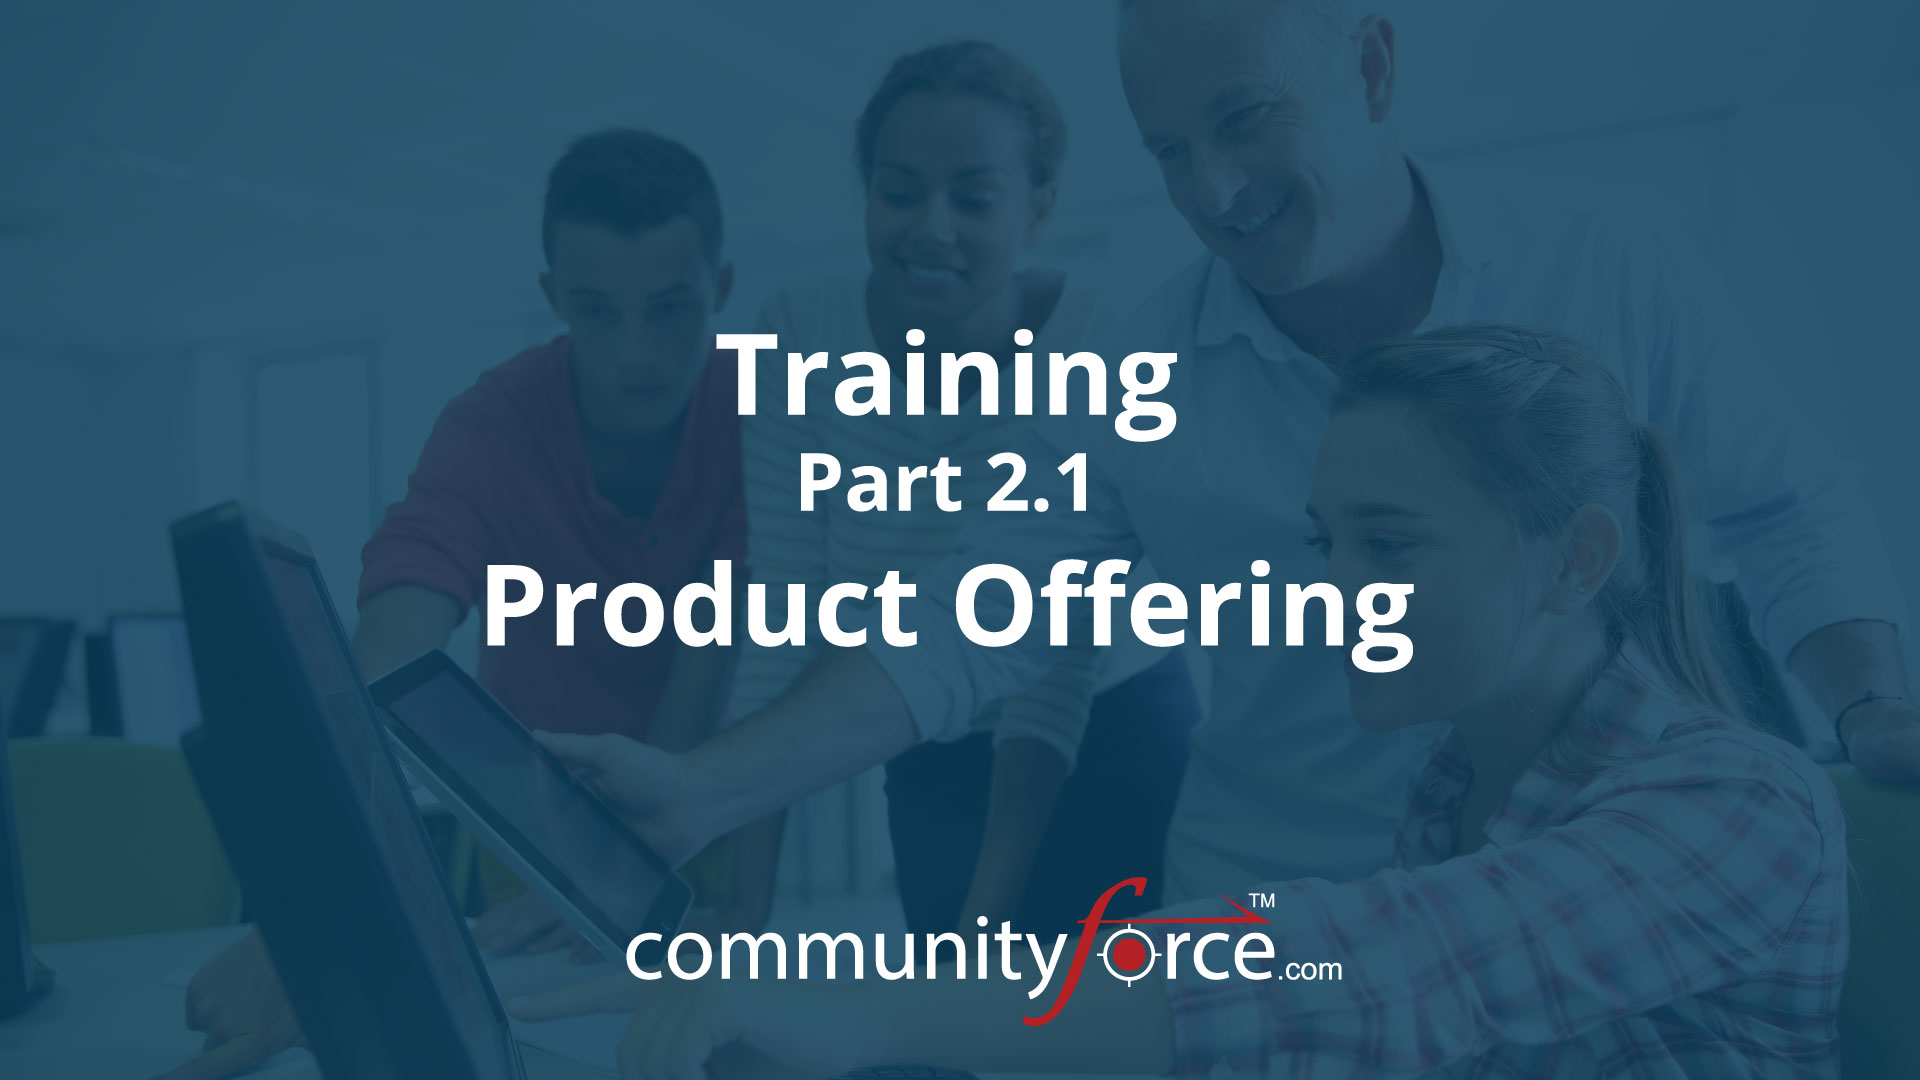 LF1 Training Part 2.1: Product Offering Overview